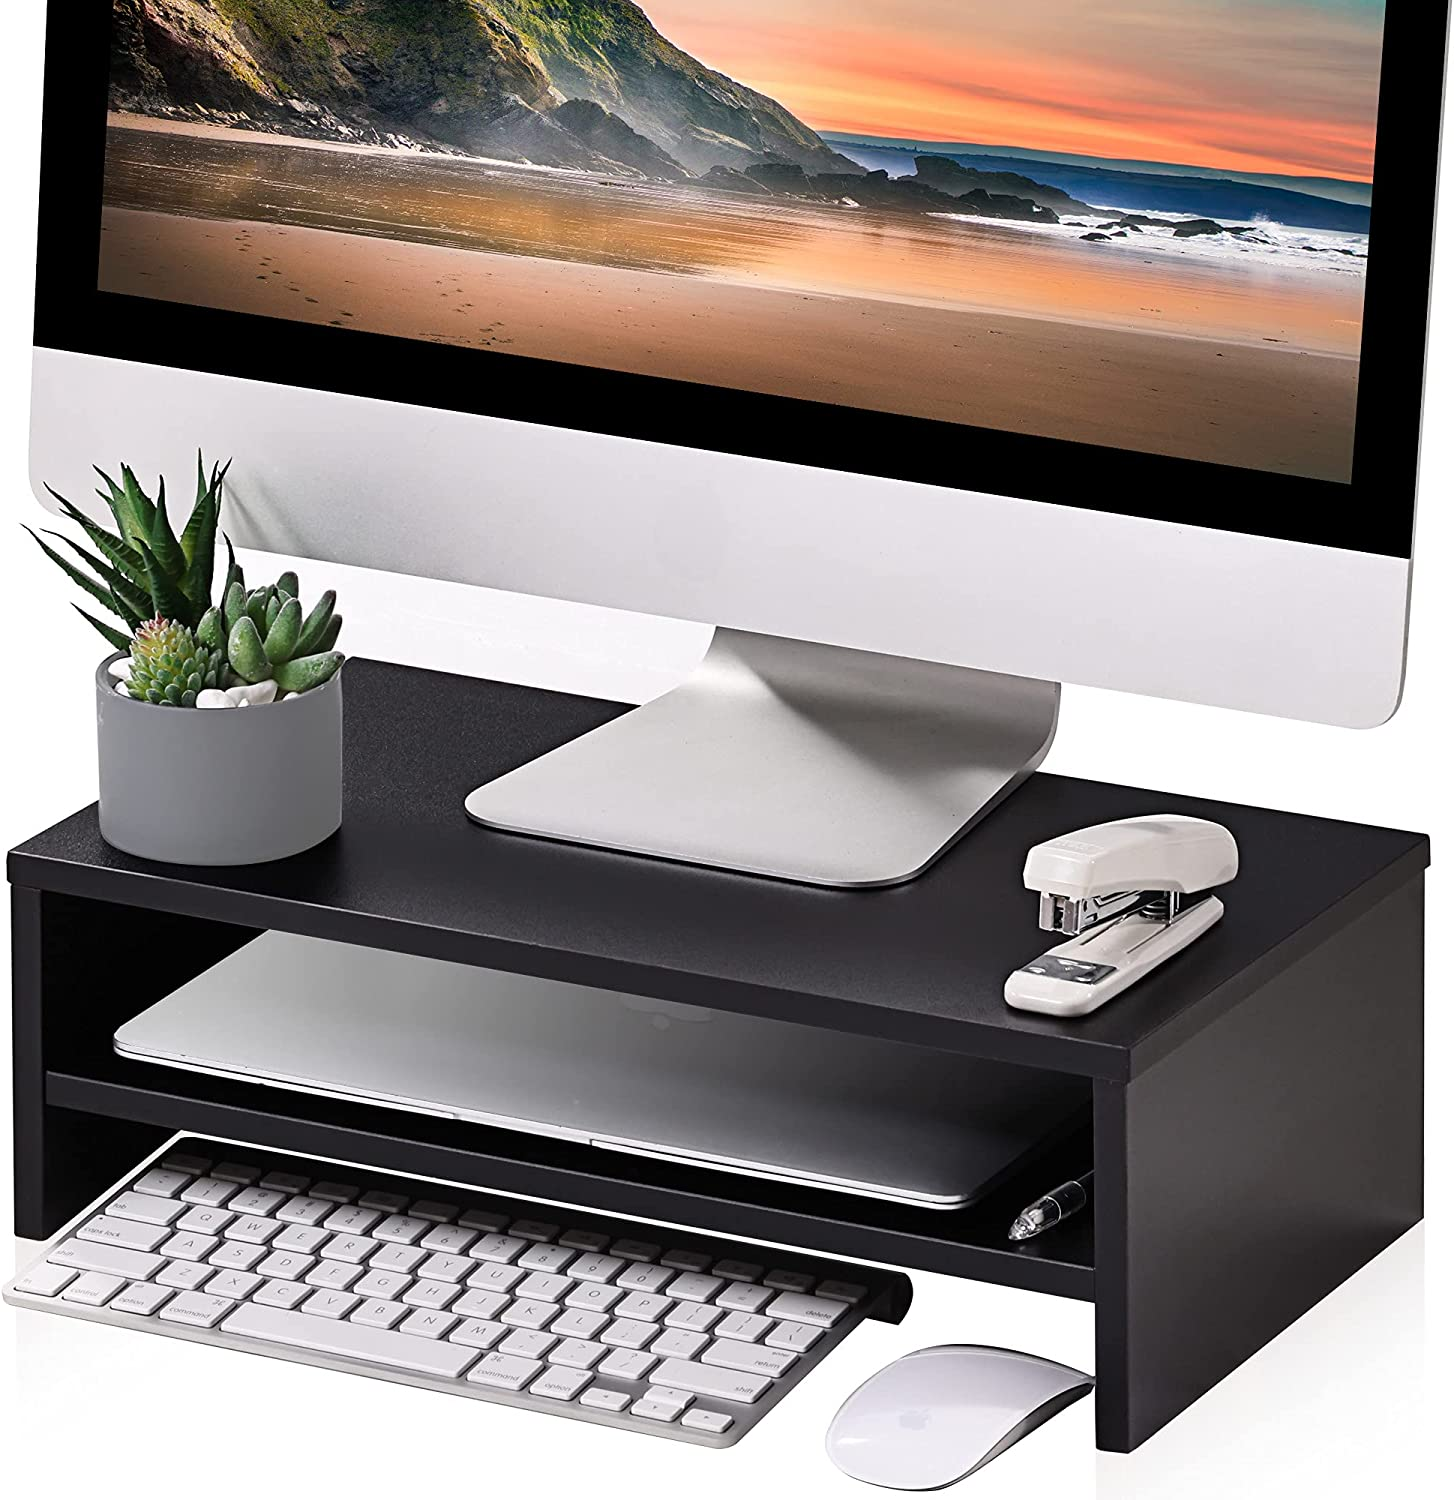 FITUEYES Monitor Stand - 2 Tiers Computer Monitor Riser with 16.7 Inch Shelf, Wood Desktop Stand for Laptop Computer Screen, Desk Organization, Office Supplies, Black, DT204201WB